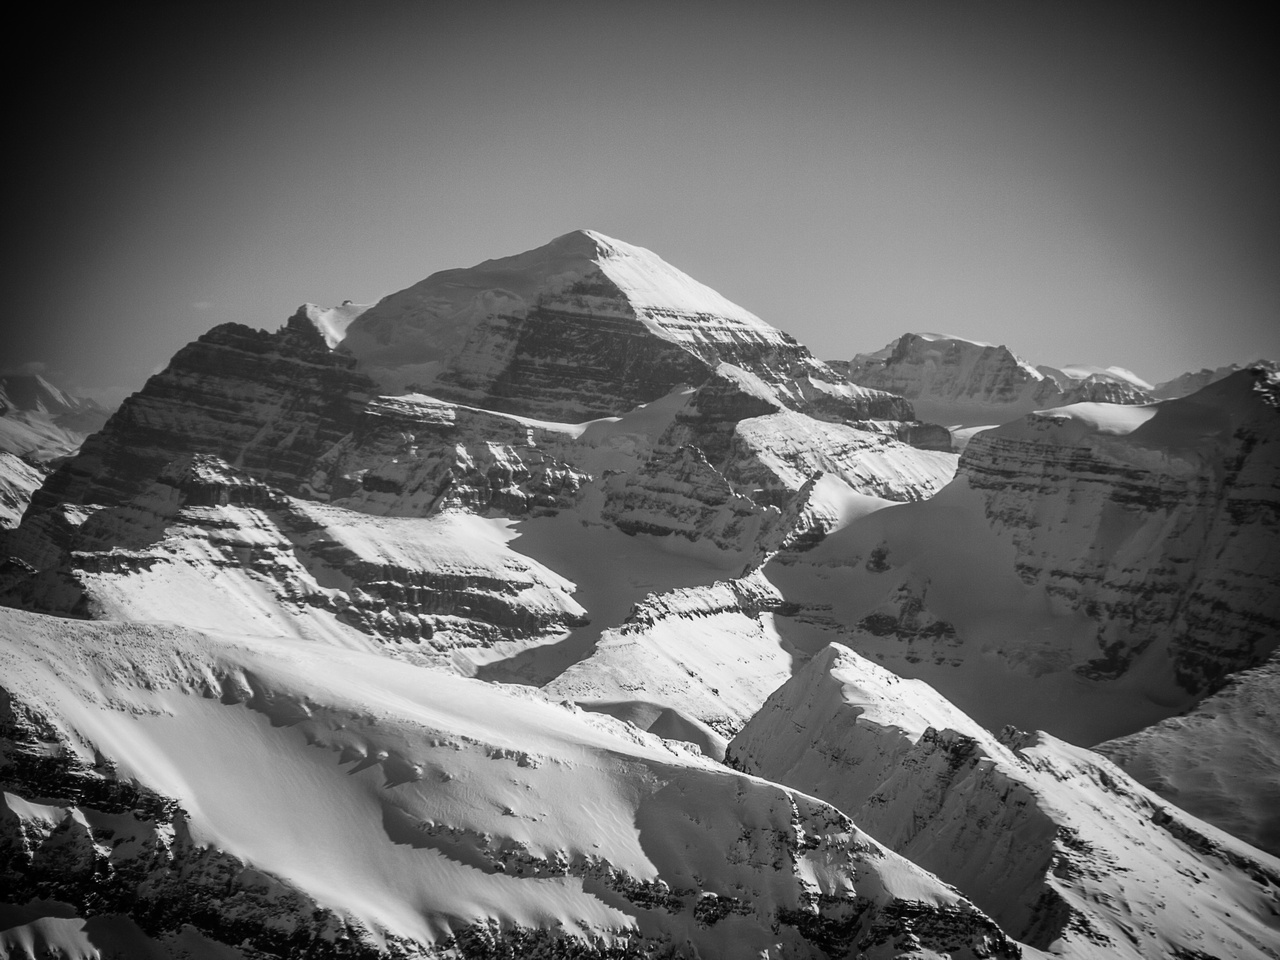 Mount Temple looms over Aberdeen and Haddo Peak.